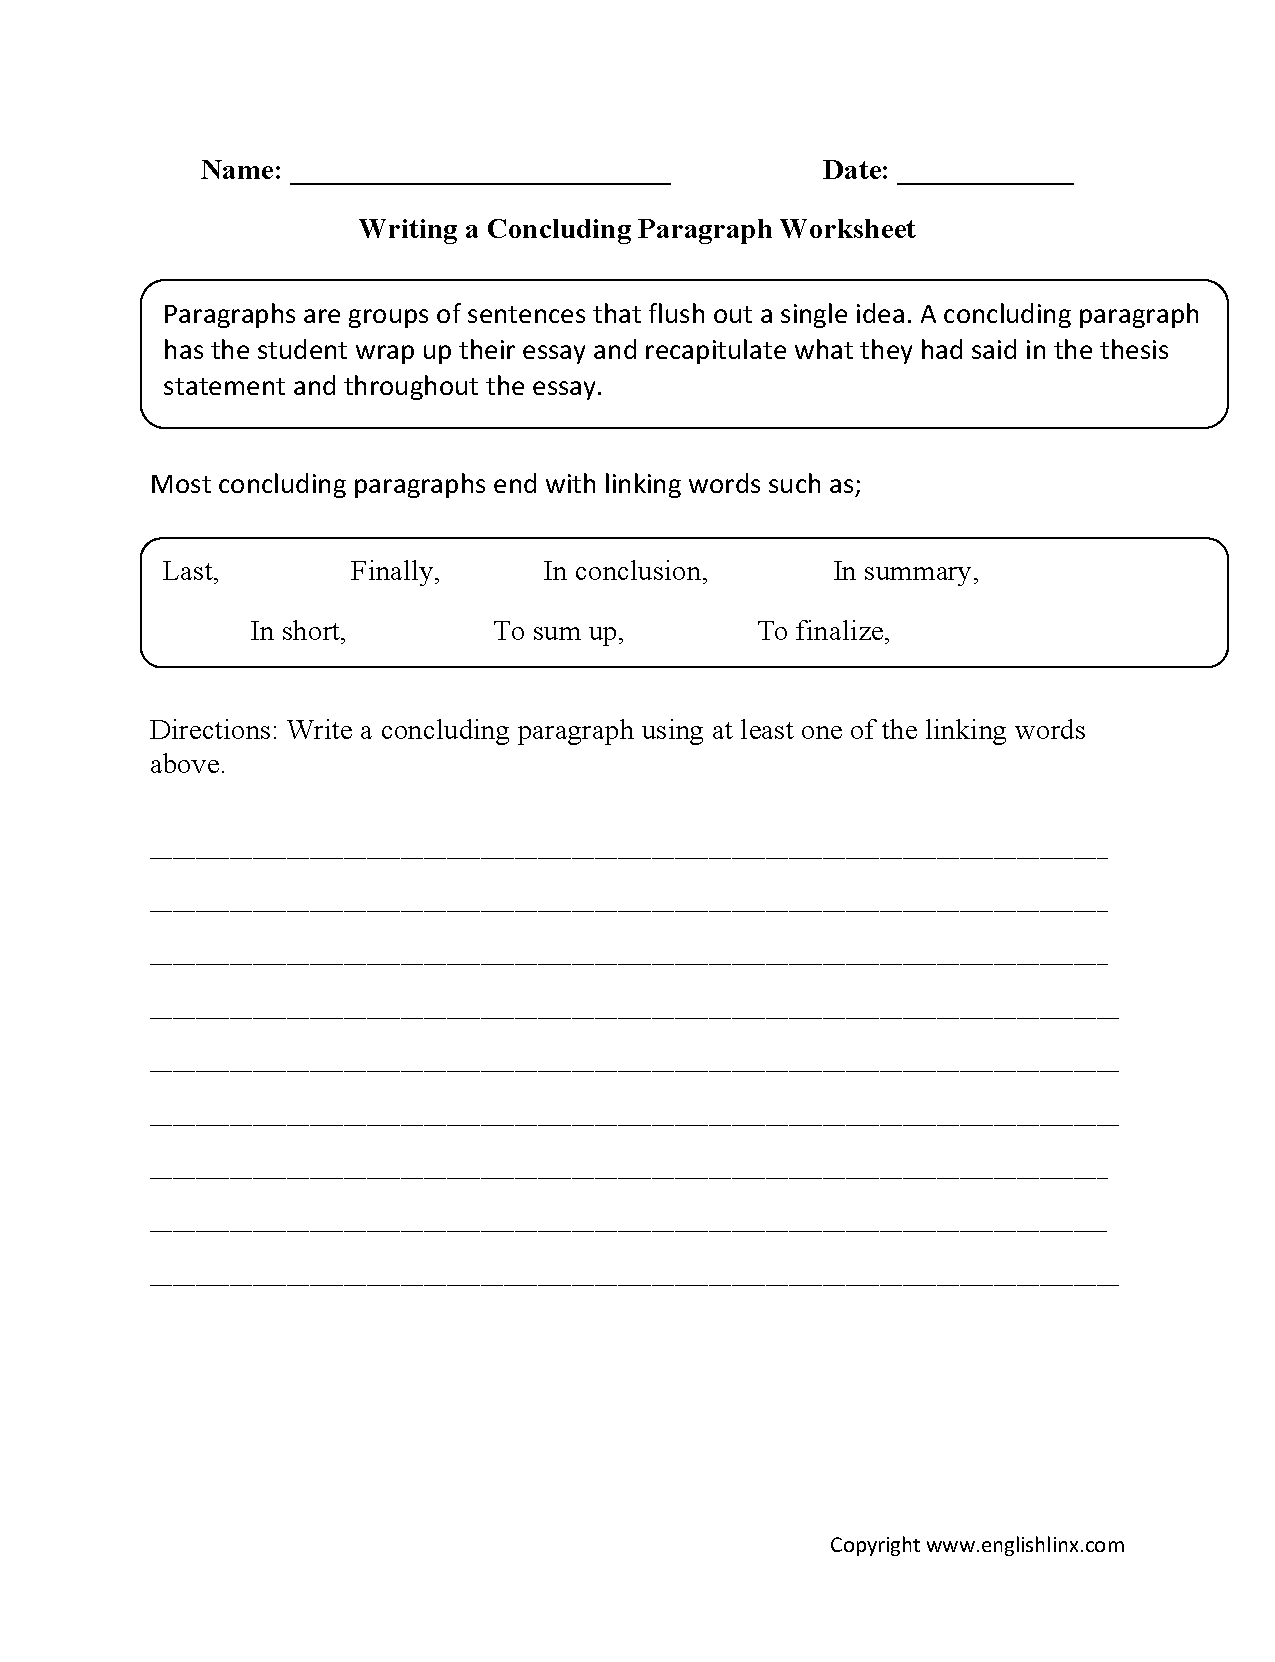 Writing Concluding Paragraph Worksheets